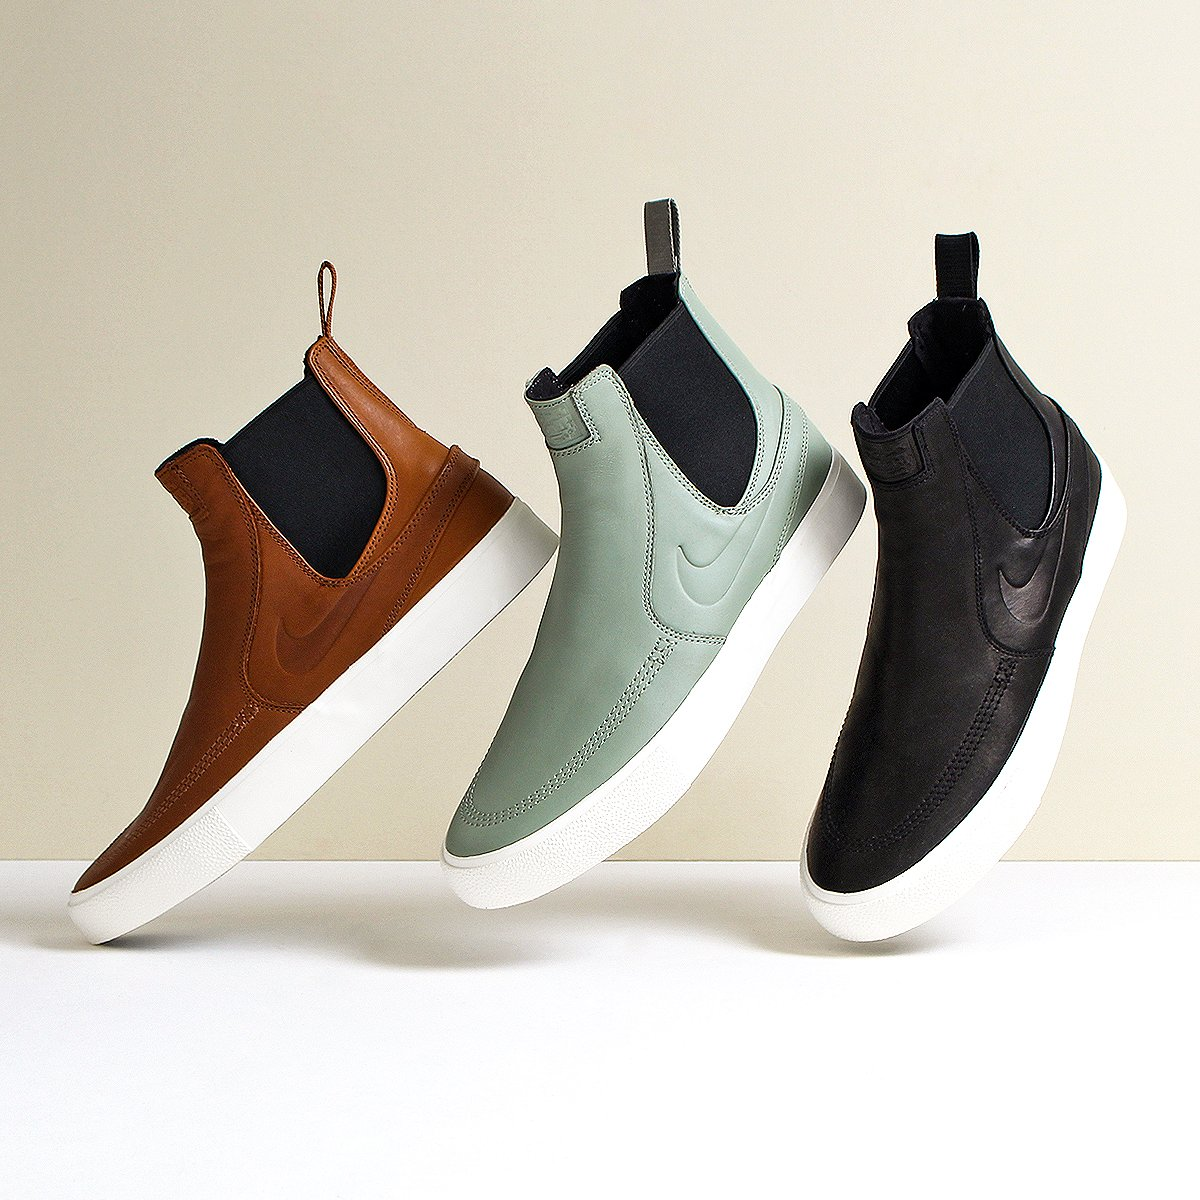 Urban Industryさんのツイート The Nike Sb Zoom Stefan Janoski Slip On Mid Rm Shoes Are Inspired By The Classic Design Of The Chelsea Boot With A Skate Interpretation Three Colourways Available Now At